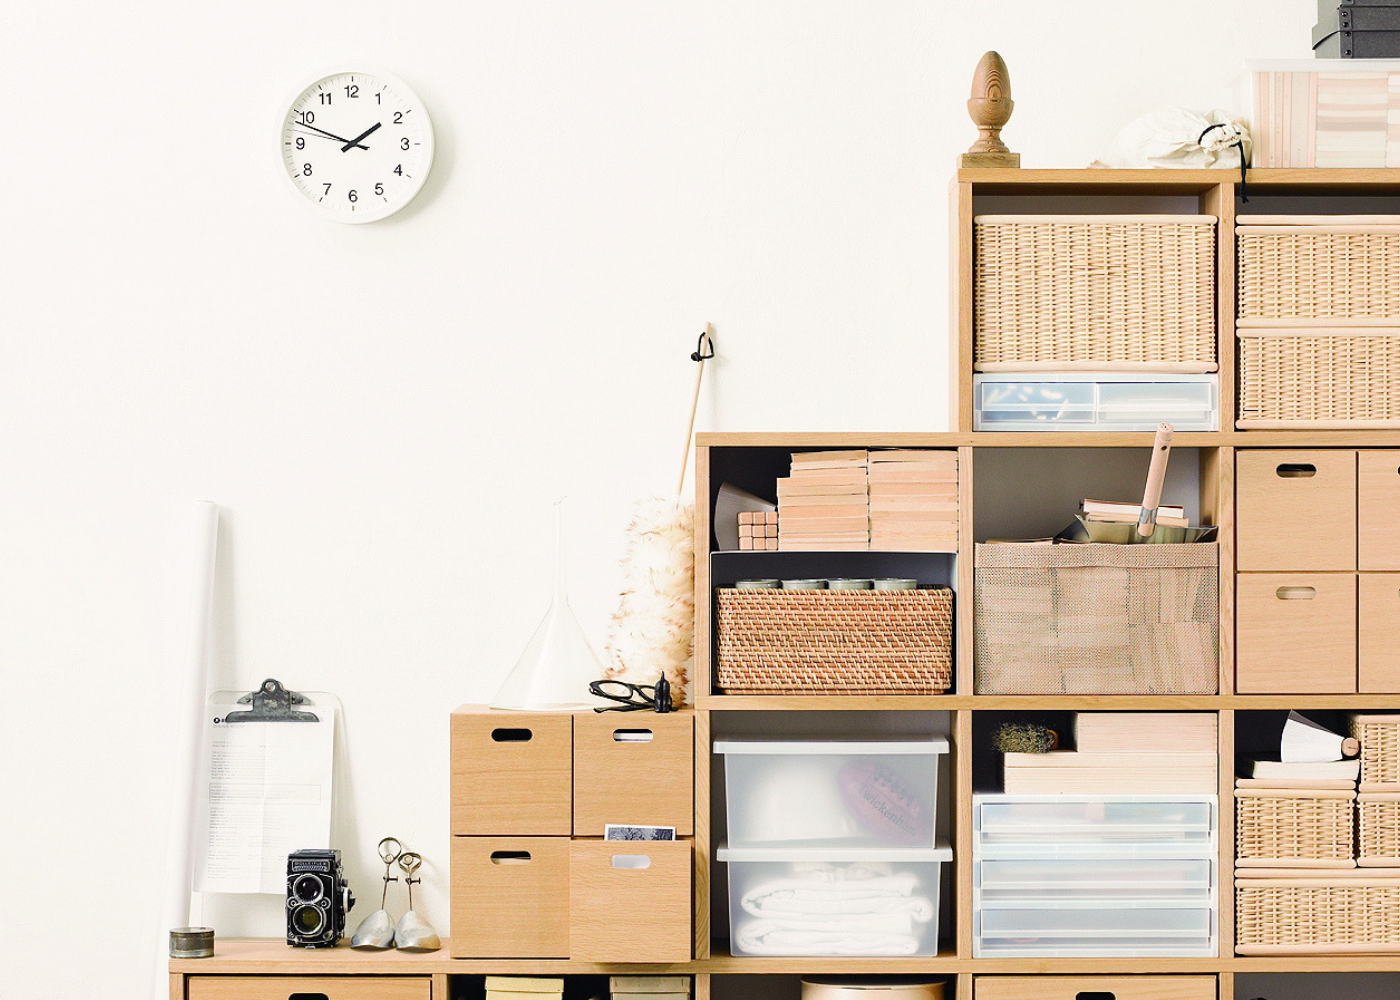 The Muji storage collection makes decluttering easy